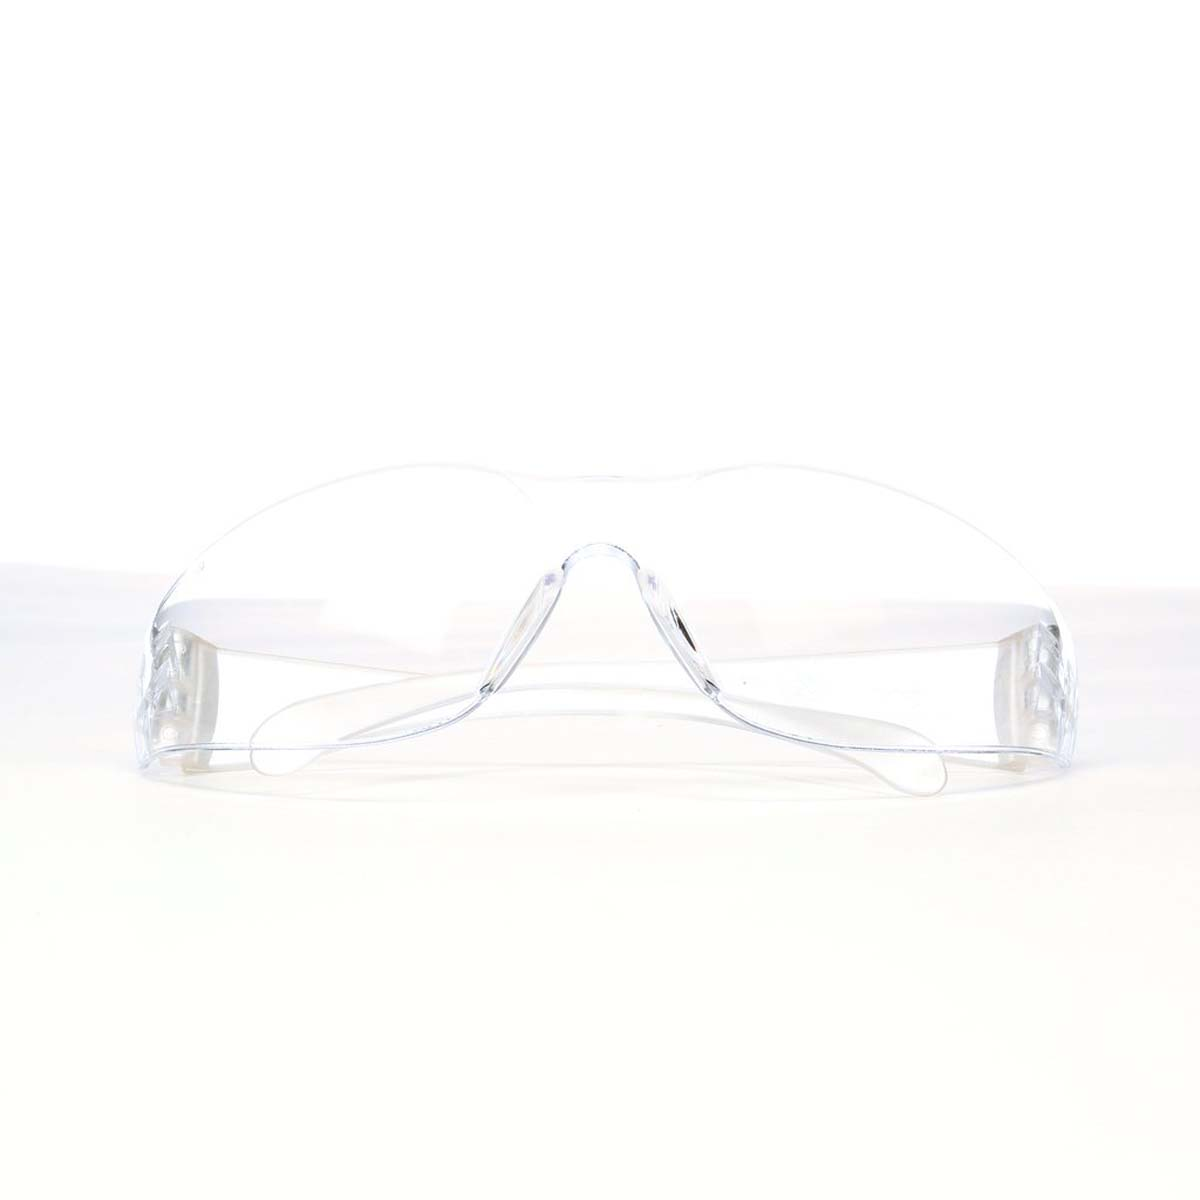 "3Mâ""¢ Virtuaâ""¢ Protective Eyewear 11329-00000-20 Clear Anti-Fog Lens, Clear Temple"